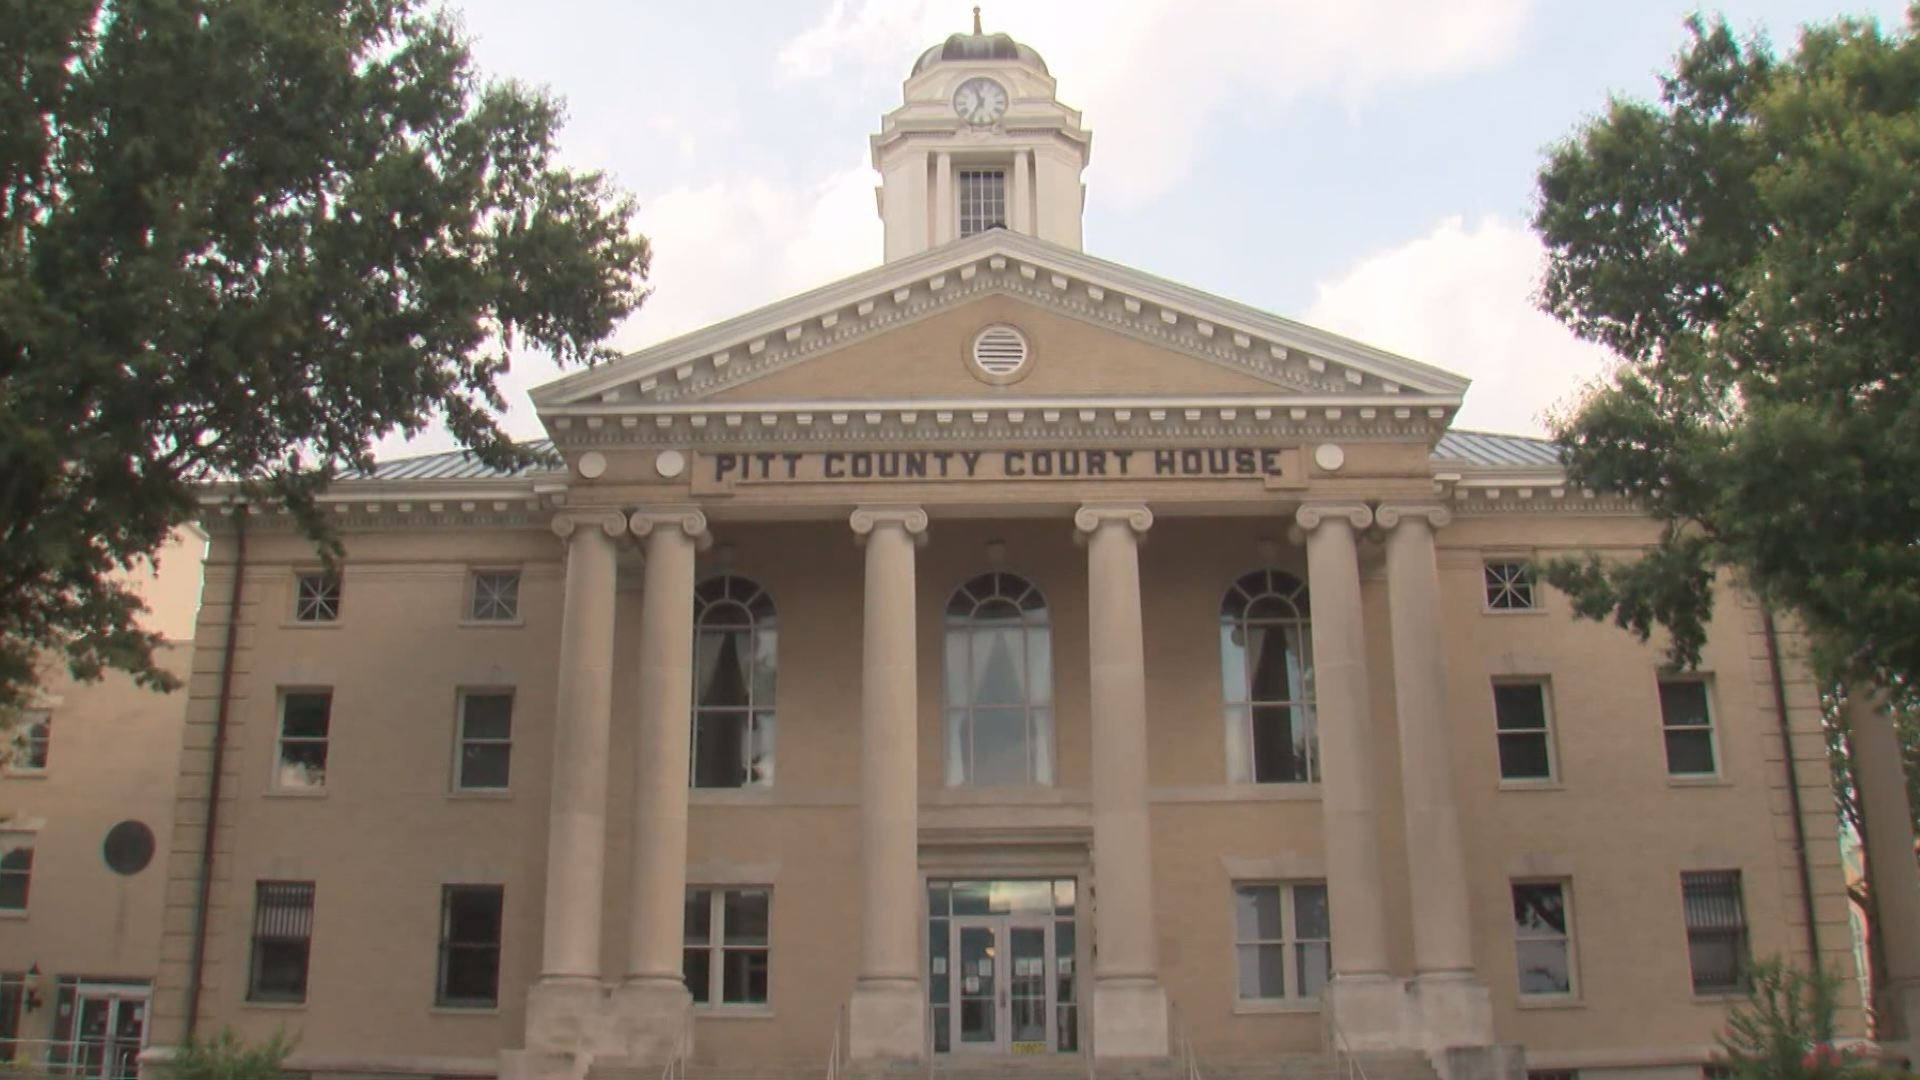 PITT CO COURTHOUSE_208325